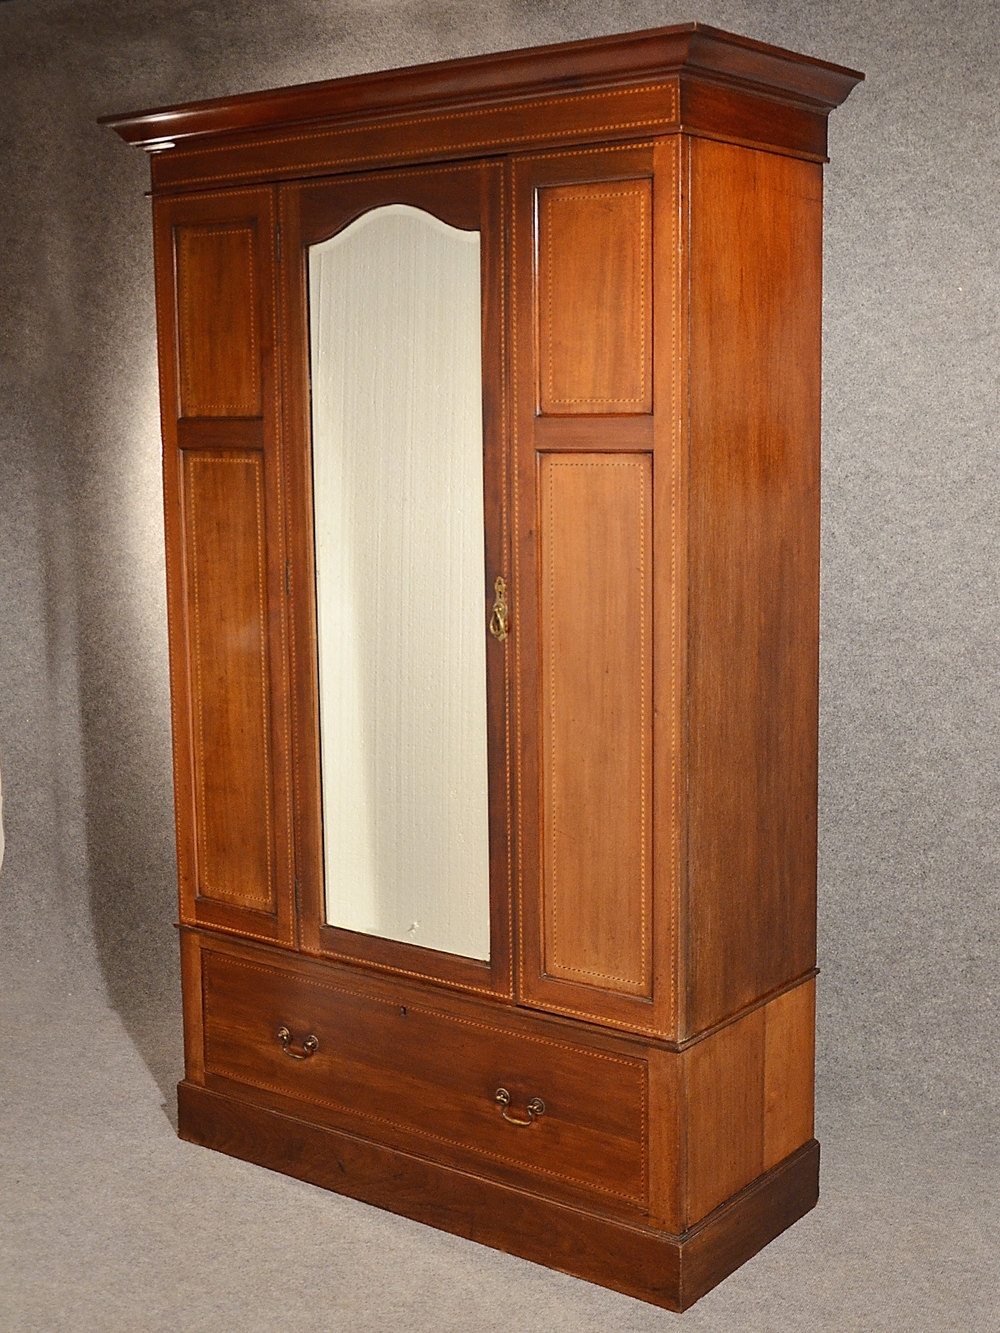 Antique Wardrobes Intended For Latest Antique Wardrobe Armoire Mirror Door Maple & Co – Antiques Atlas (View 4 of 15)